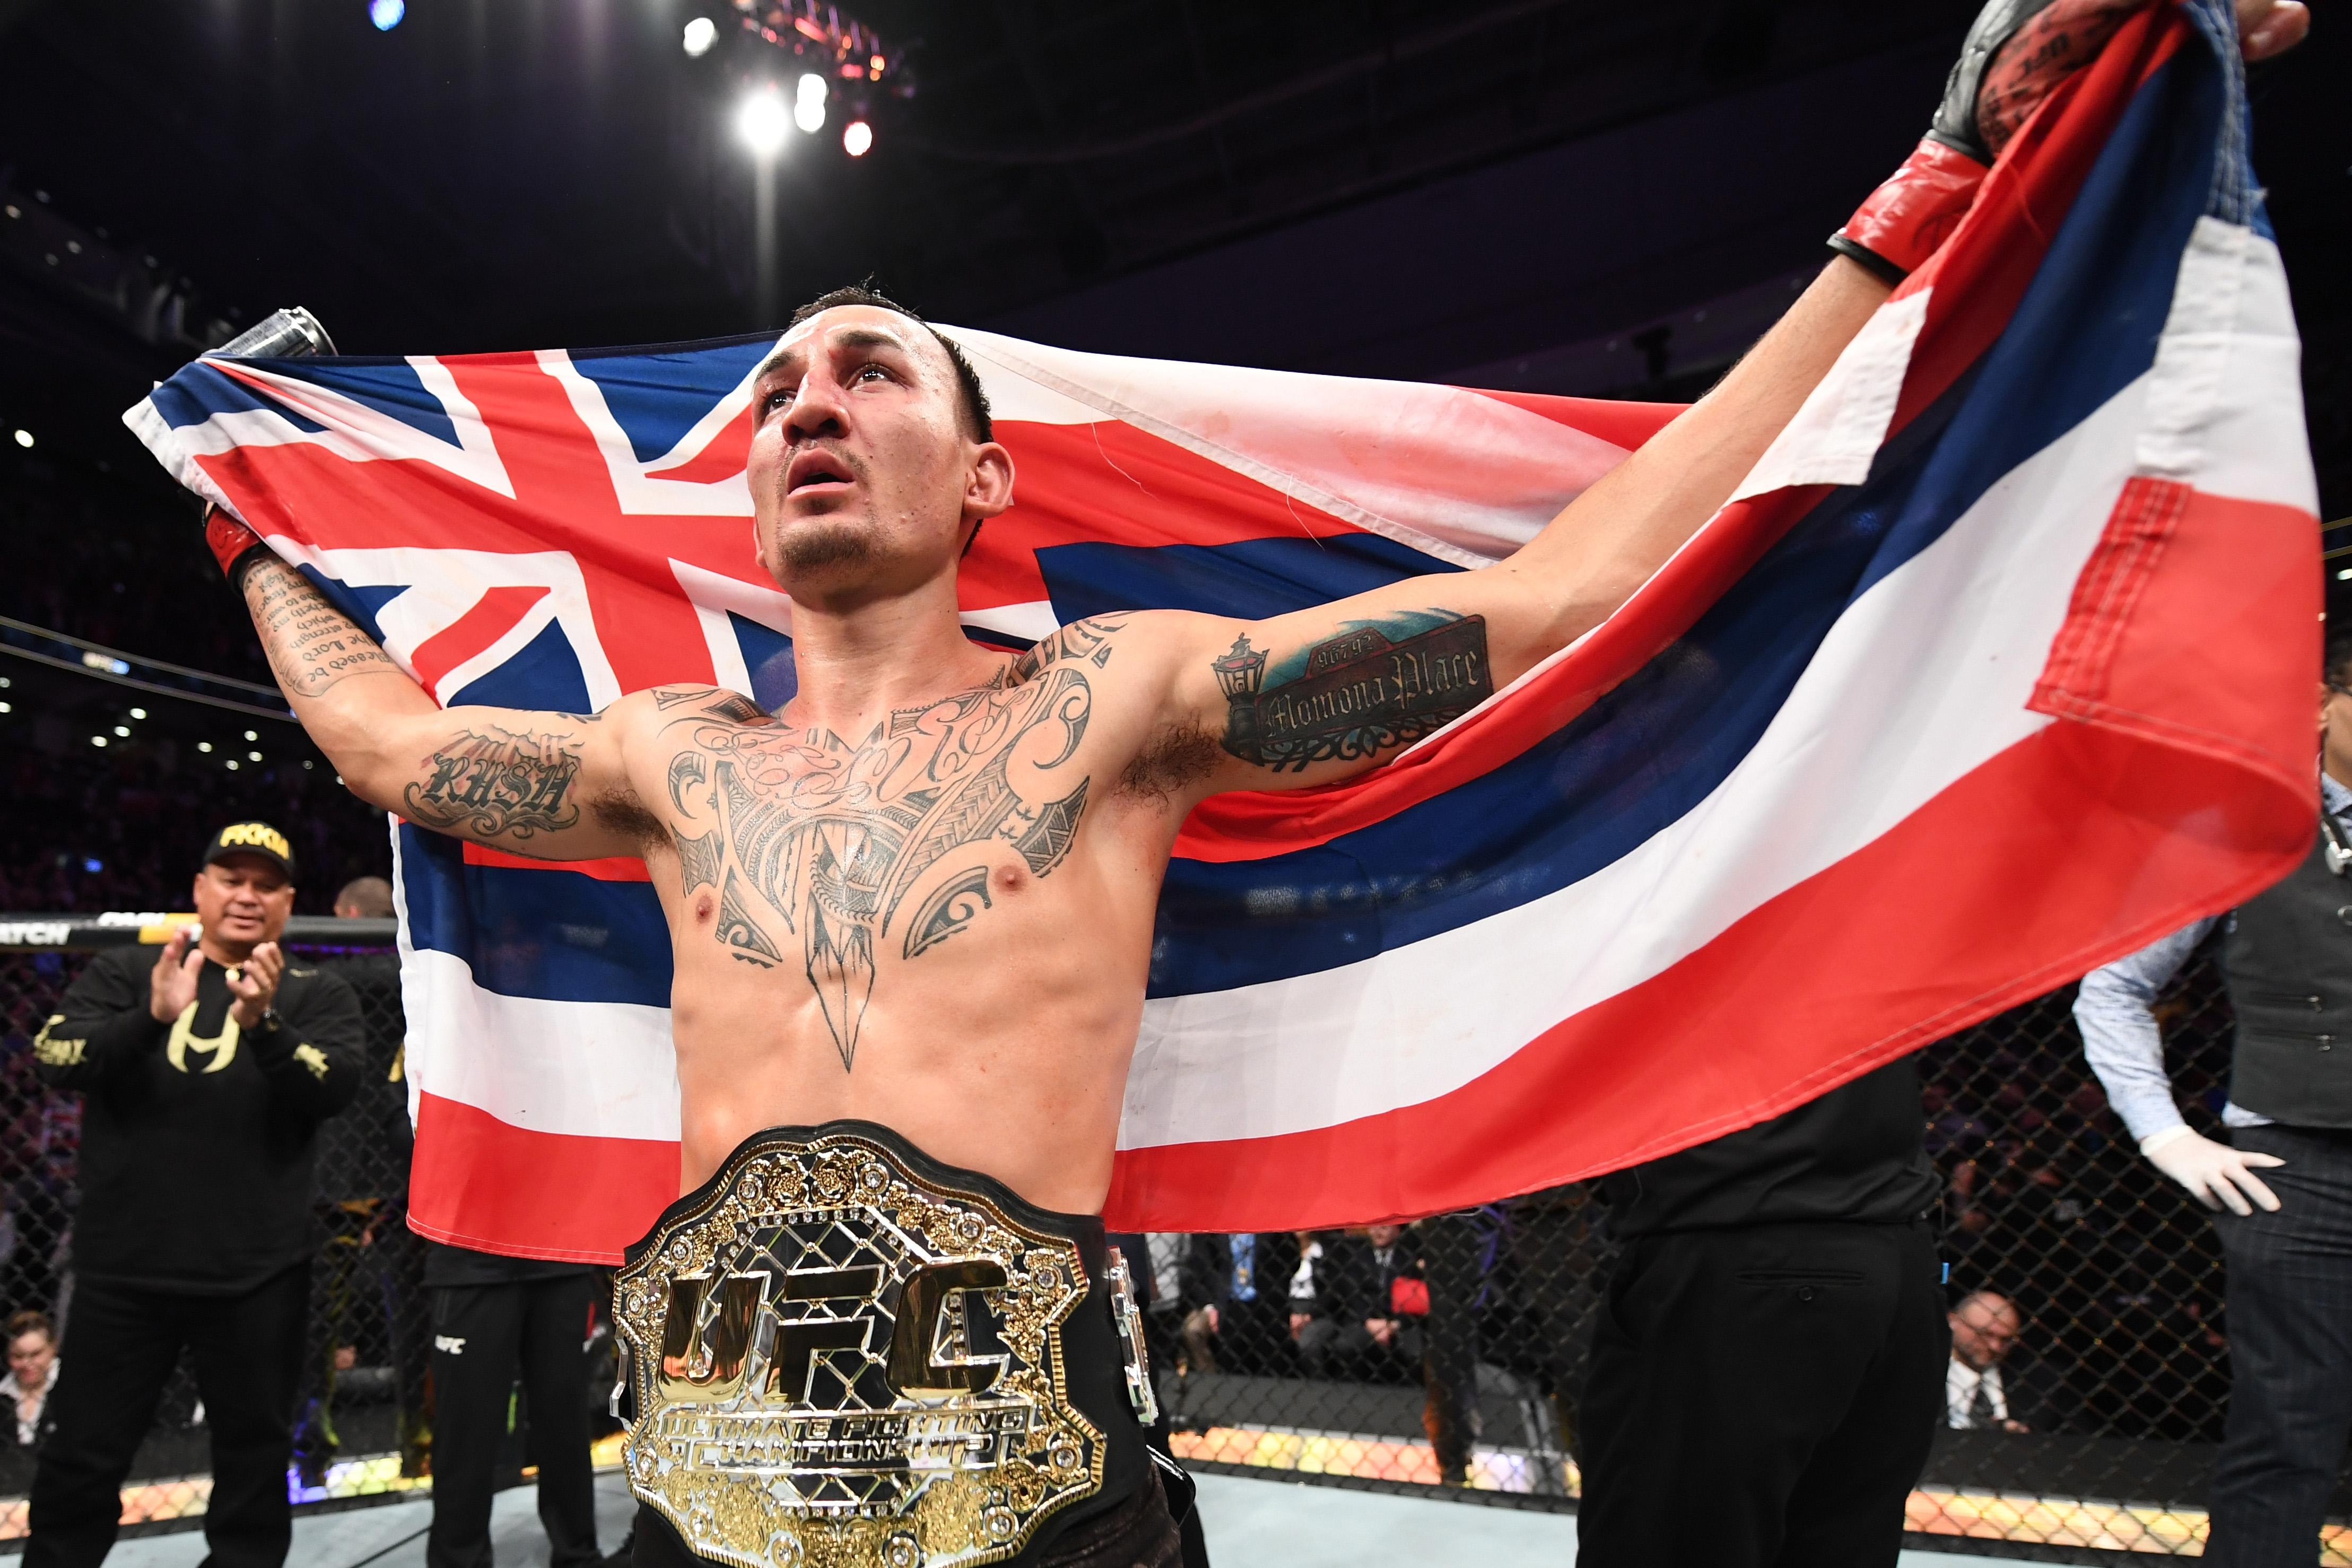 Max Holloway deserves to fight at home in Hawaii, but will he move up to face Conor or Khabib?